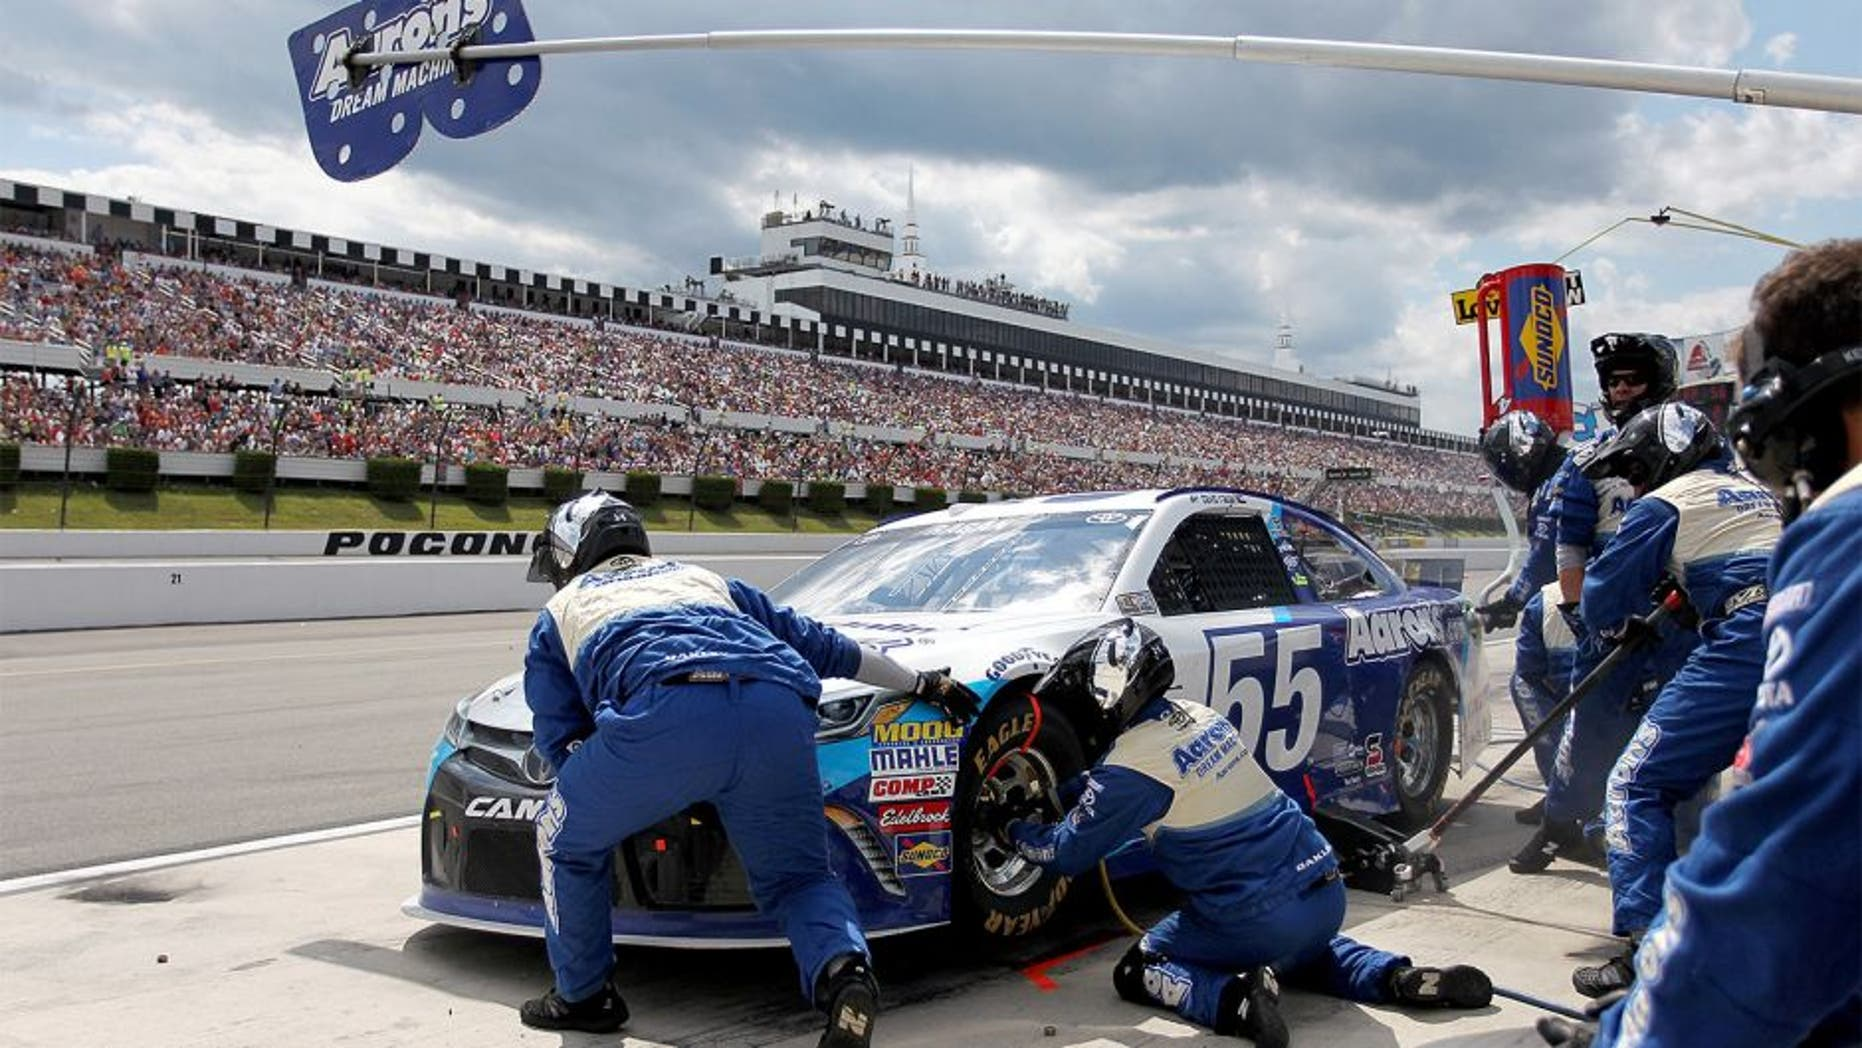 LONG POND, PA - AUGUST 02: David Ragan, driver of the #55 Aaron's Dream Machine Toyota, pits during the NASCAR Sprint Cup Series Windows 10 400 at Pocono Raceway on August 2, 2015 in Long Pond, Pennsylvania. (Photo by Tim Bradbury/Getty Images)